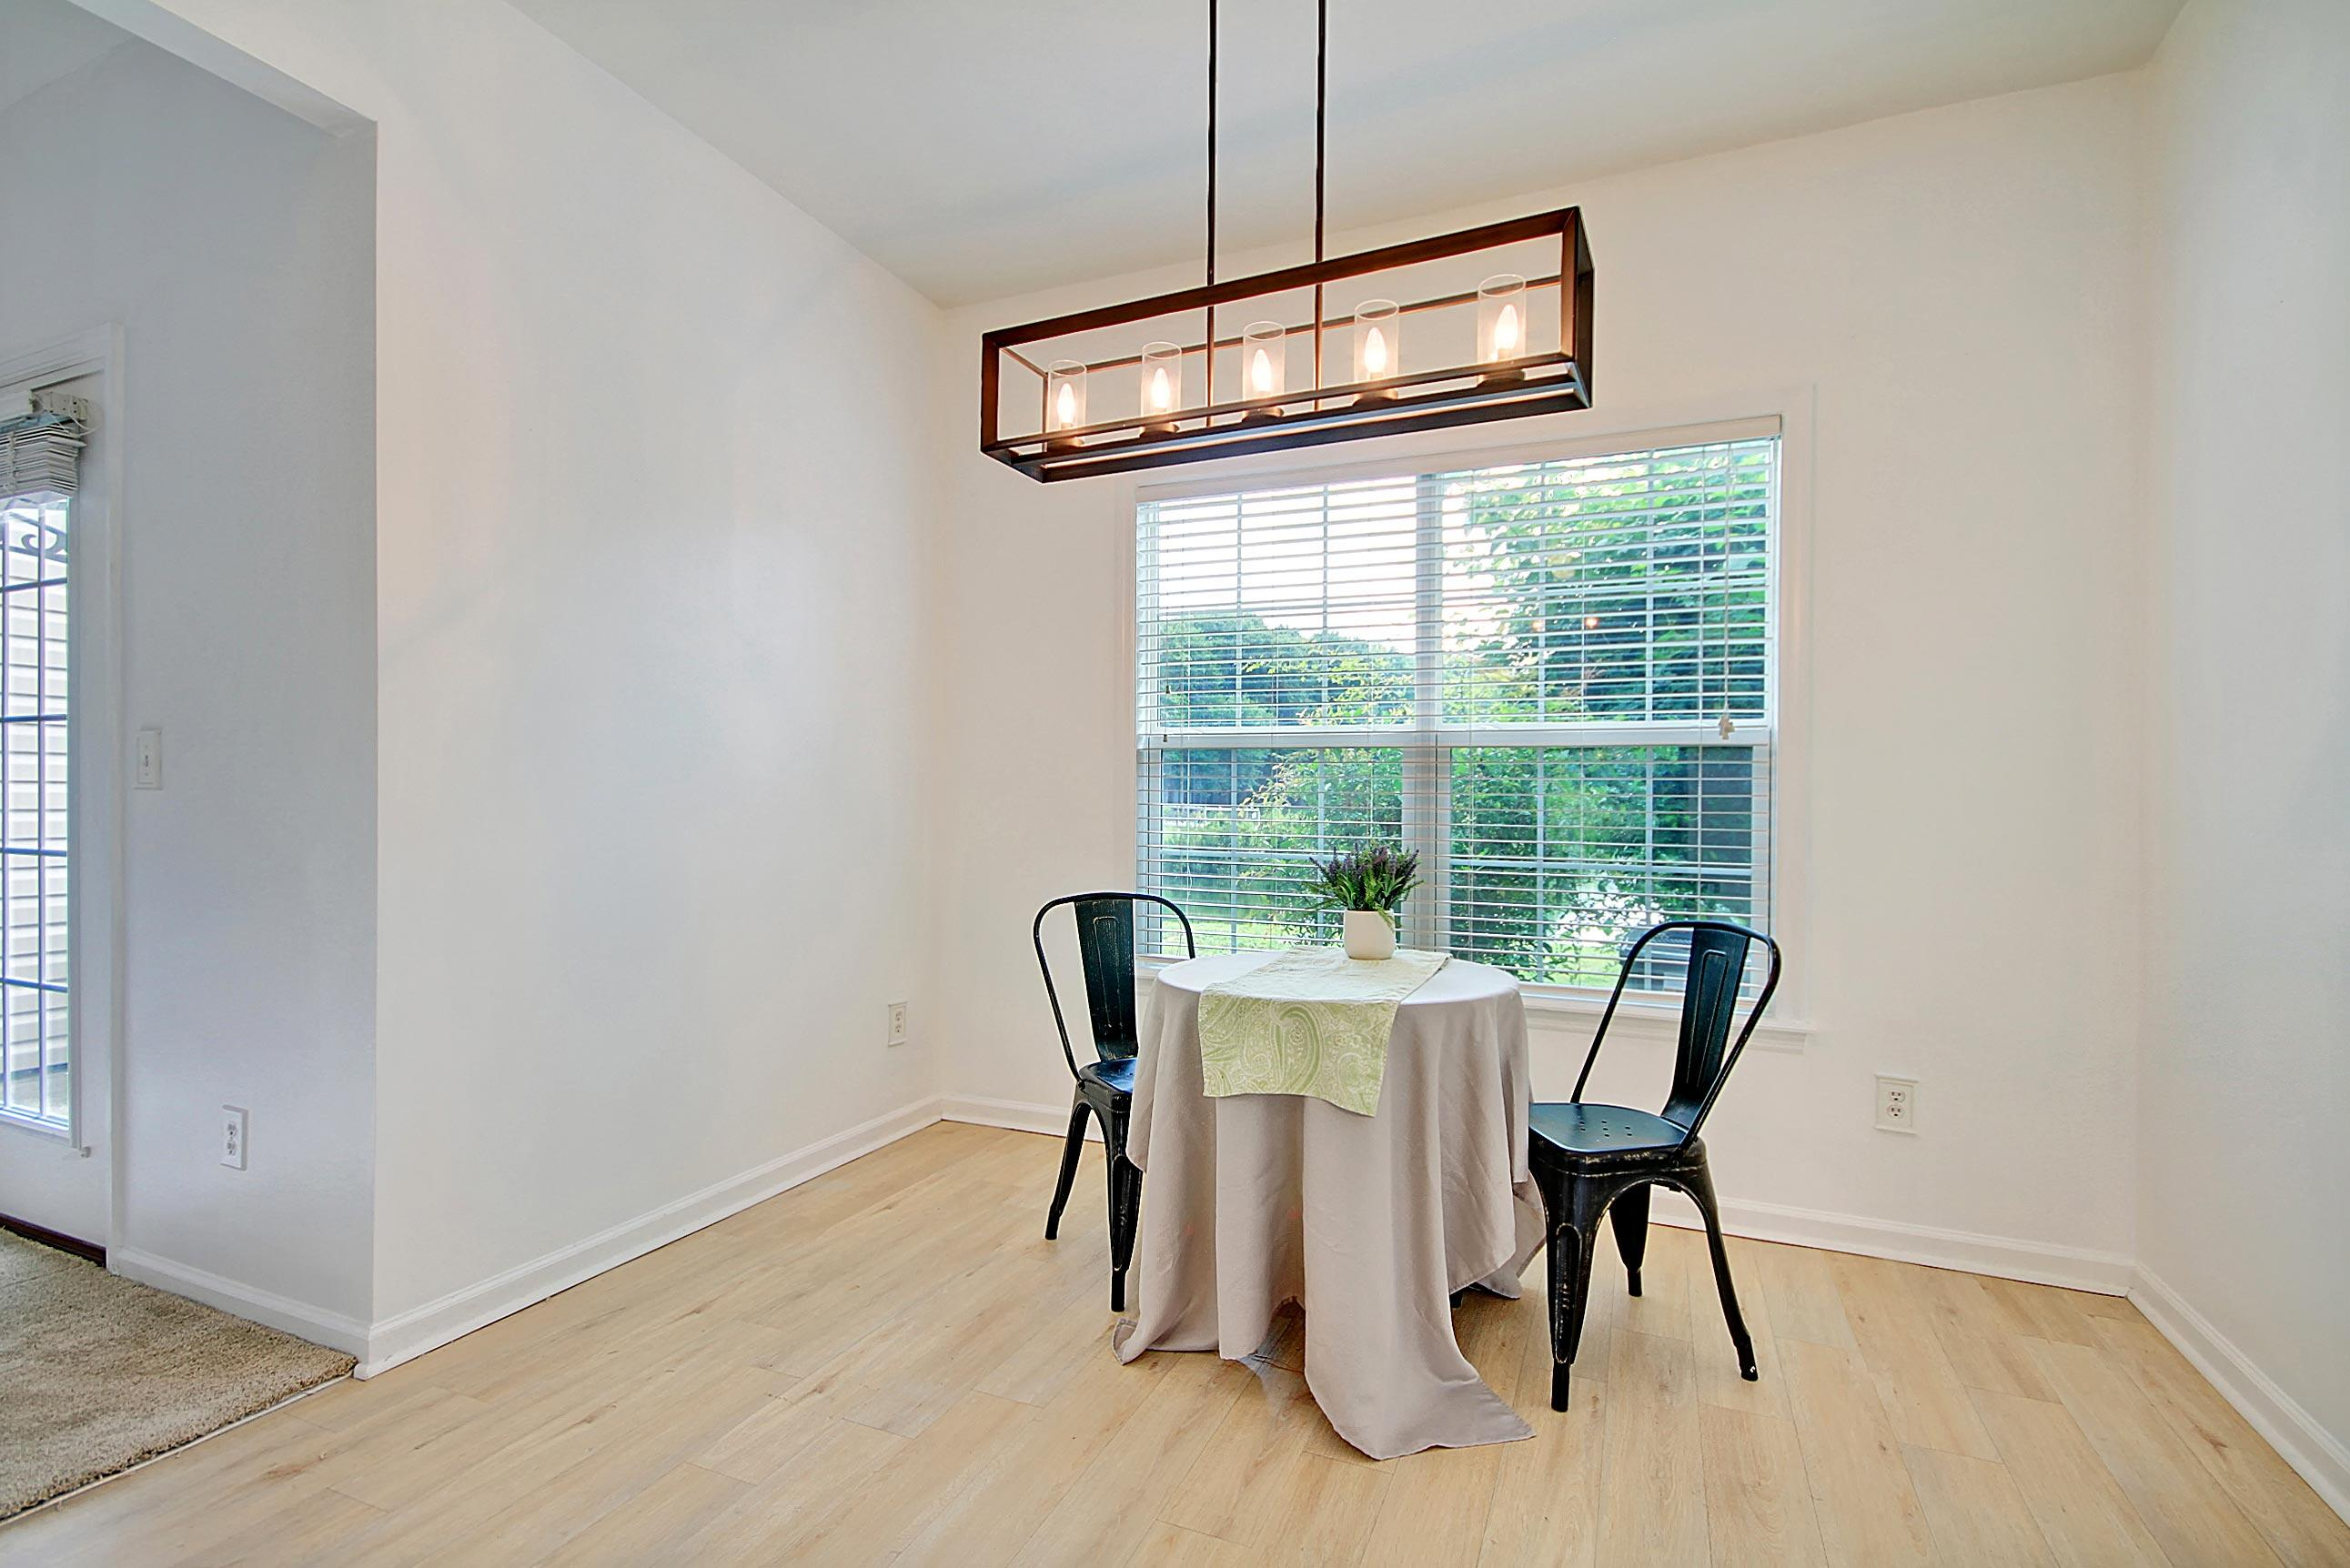 Rivers Point Row Homes For Sale - 37 Rivers Point, Charleston, SC - 14